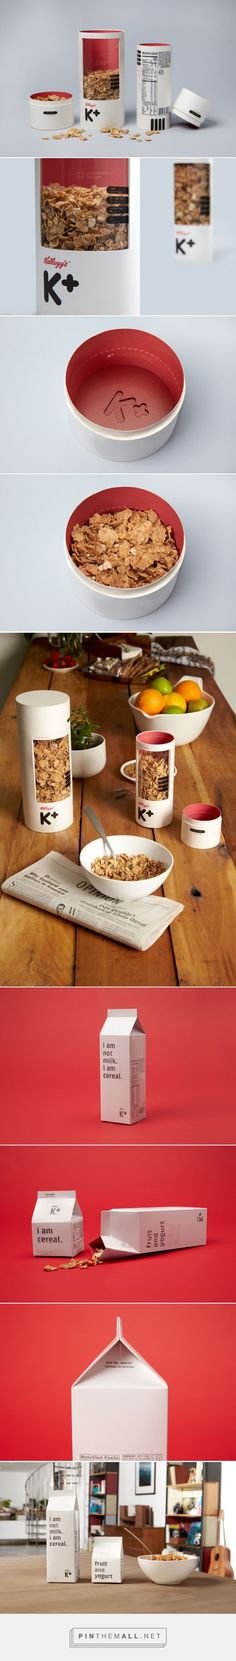 Mun Joo Jane – Cereal for Adults, student packaging concept